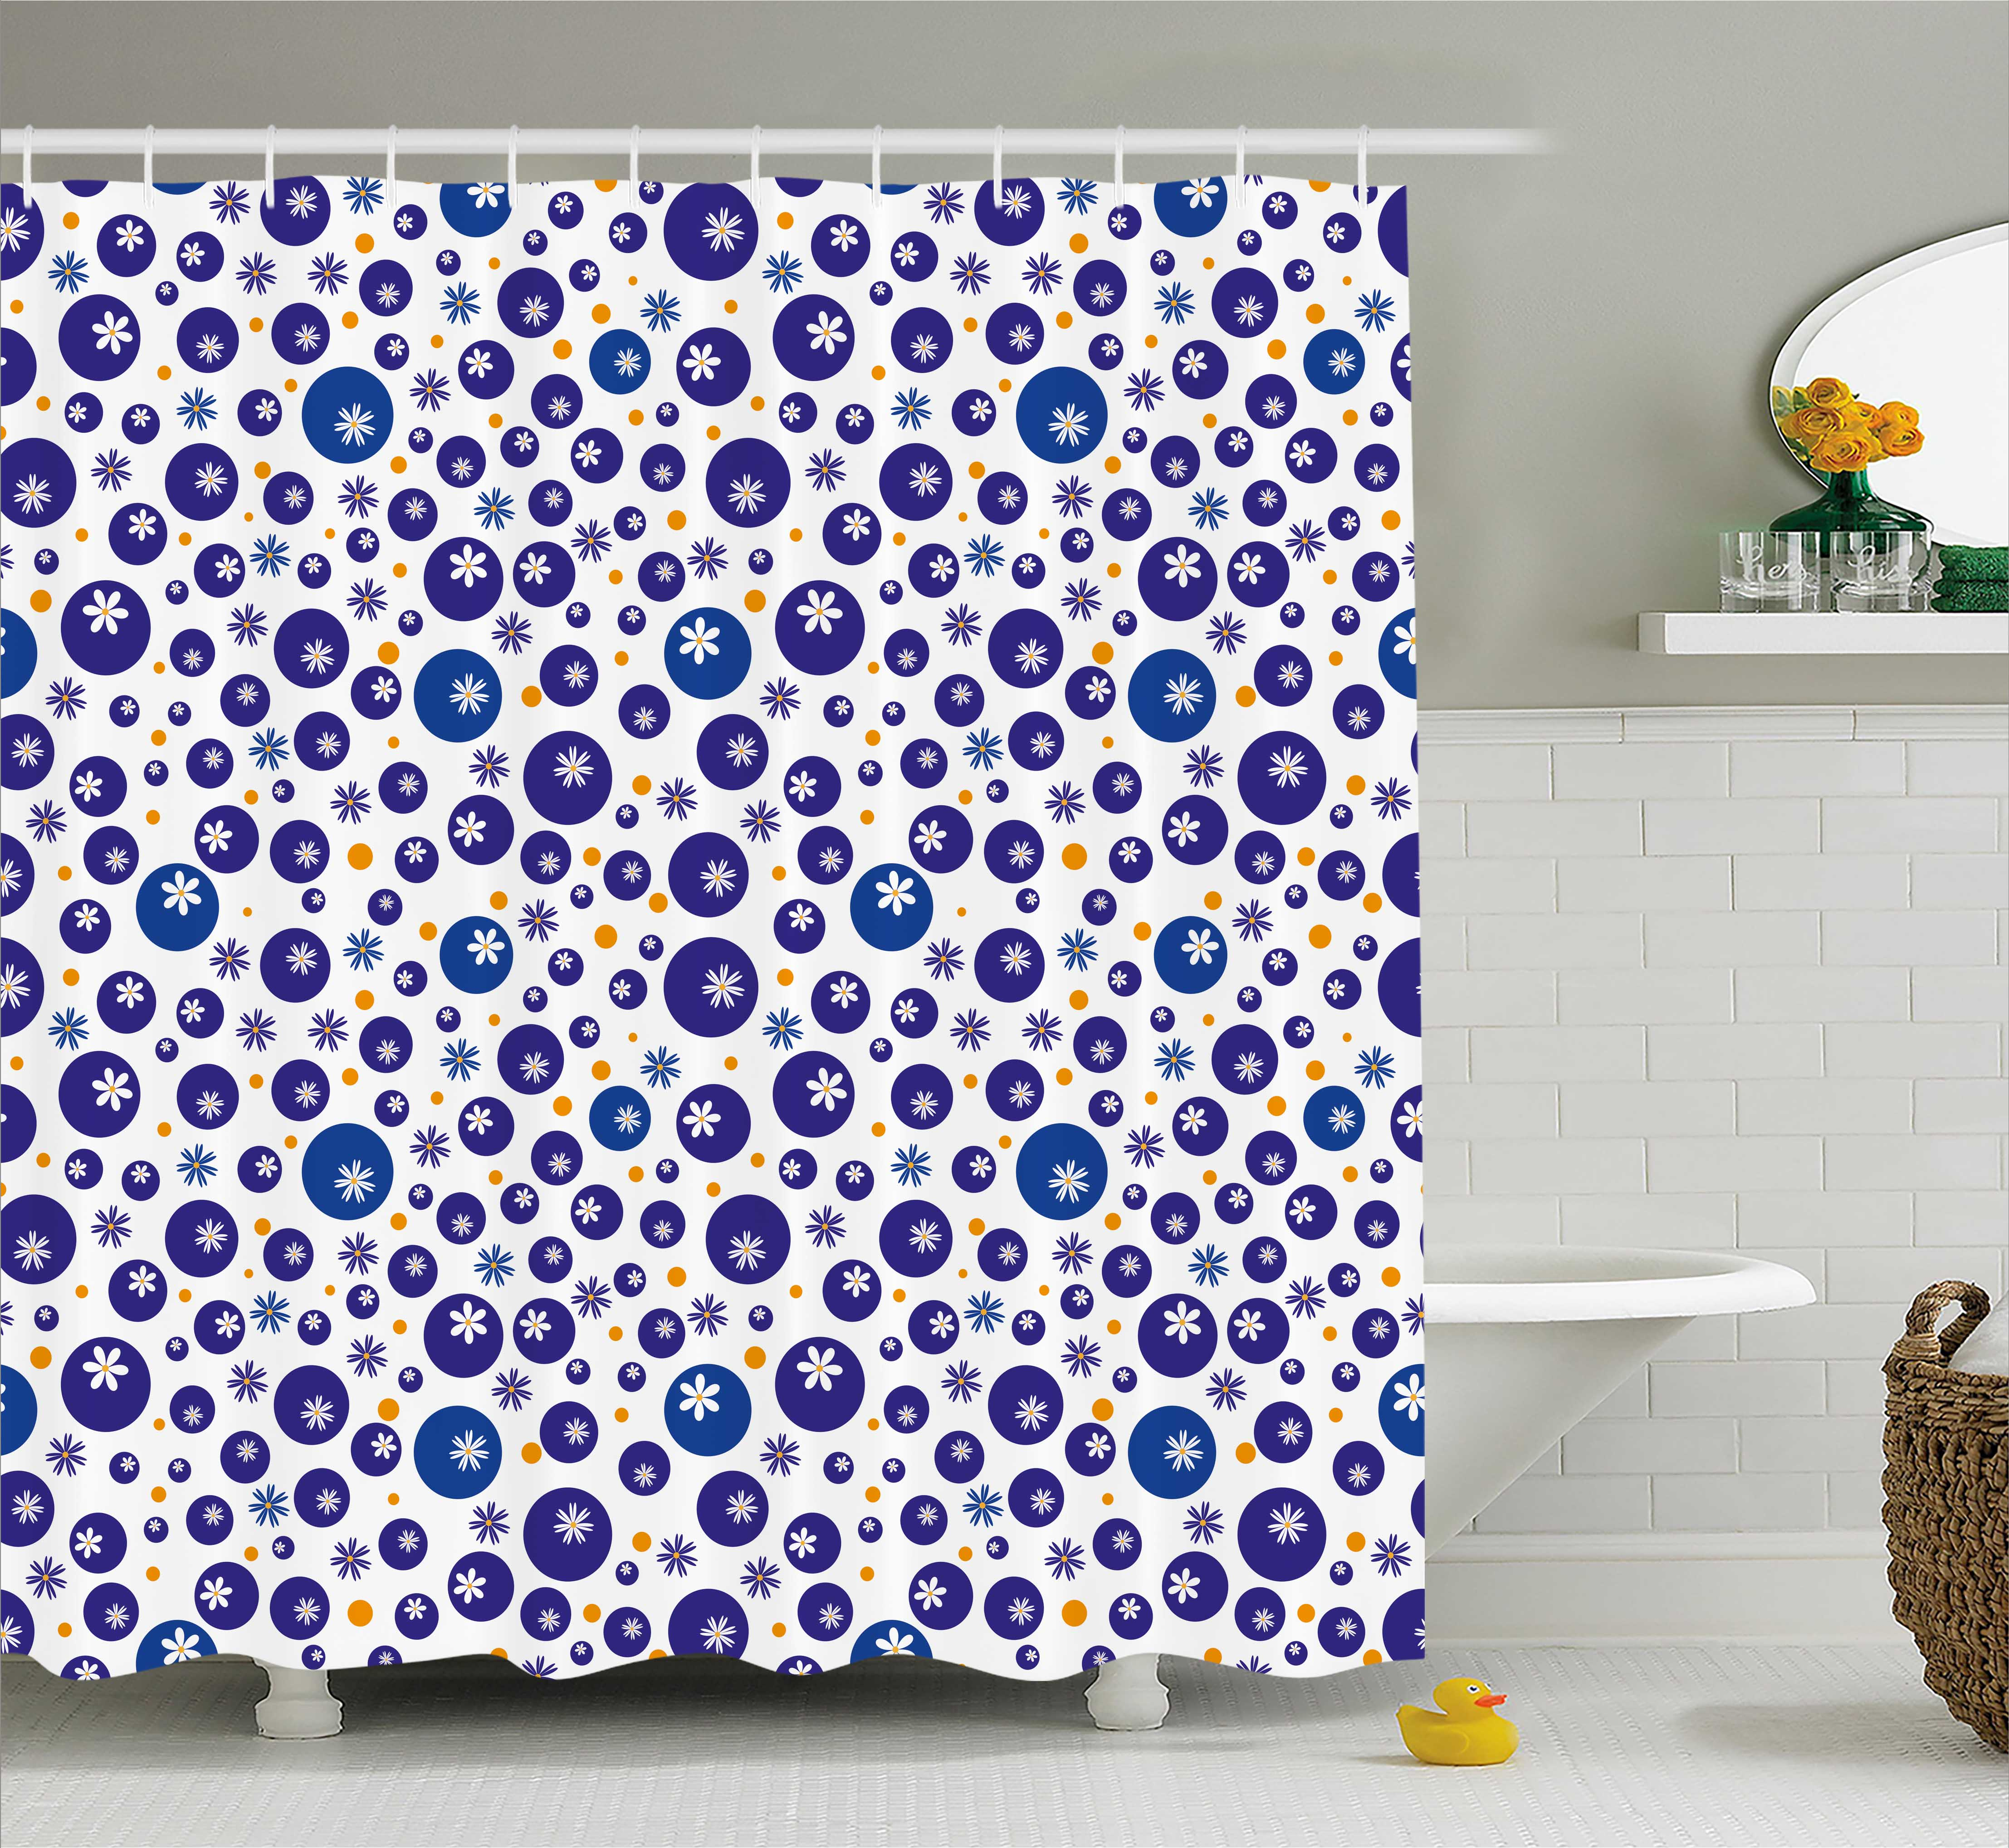 Floral Shower Curtain, Blue and Orange Polka Dots with Little Spring Flowers Chamomiles and Daisies, Fabric Bathroom Set with Hooks, 69W X 75L Inches Long, Blue White Orange, by Ambesonne